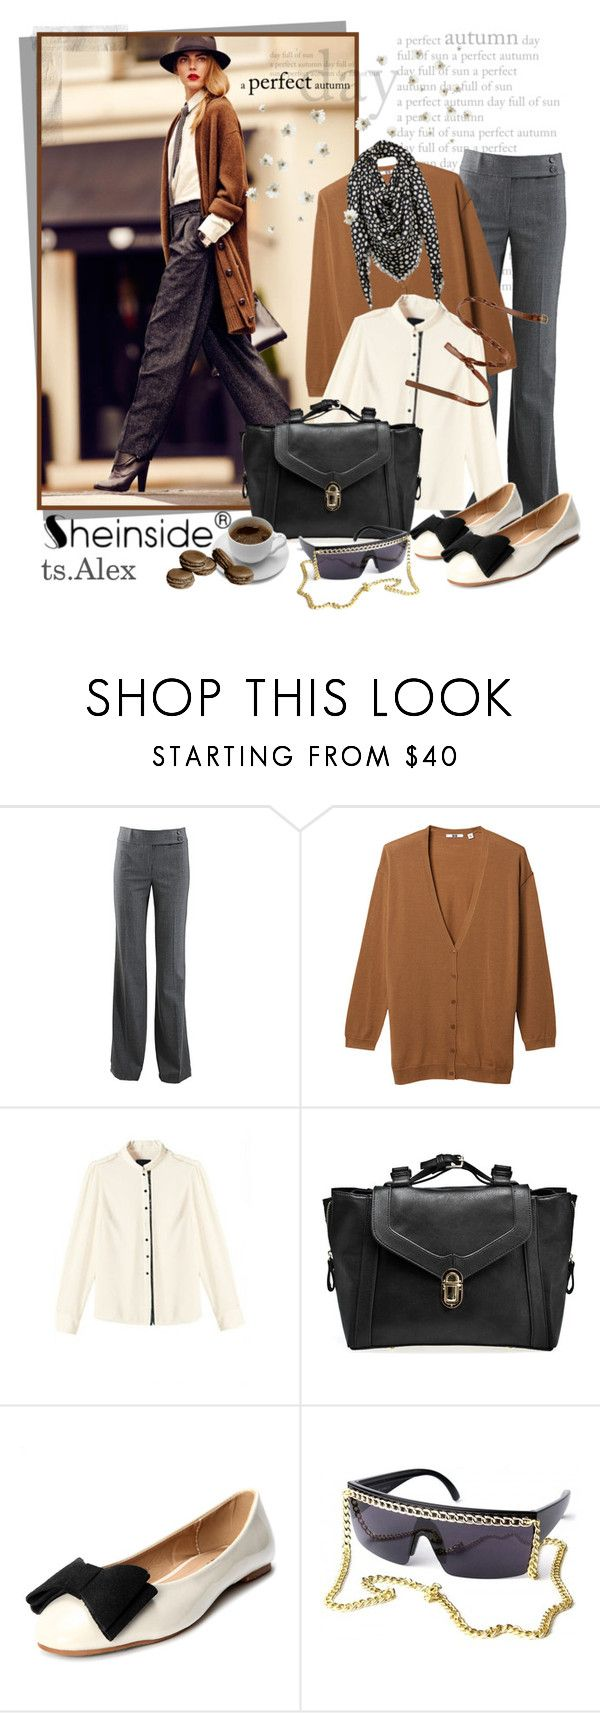 """Lets get ready for autumn"" by ts-alex ❤ liked on Polyvore featuring iEva, Michael Kors, Uniqlo, Frame Chain, H&M, Louis Vuitton, studded handbags, ballet flats, long cardigans and bow pumps"